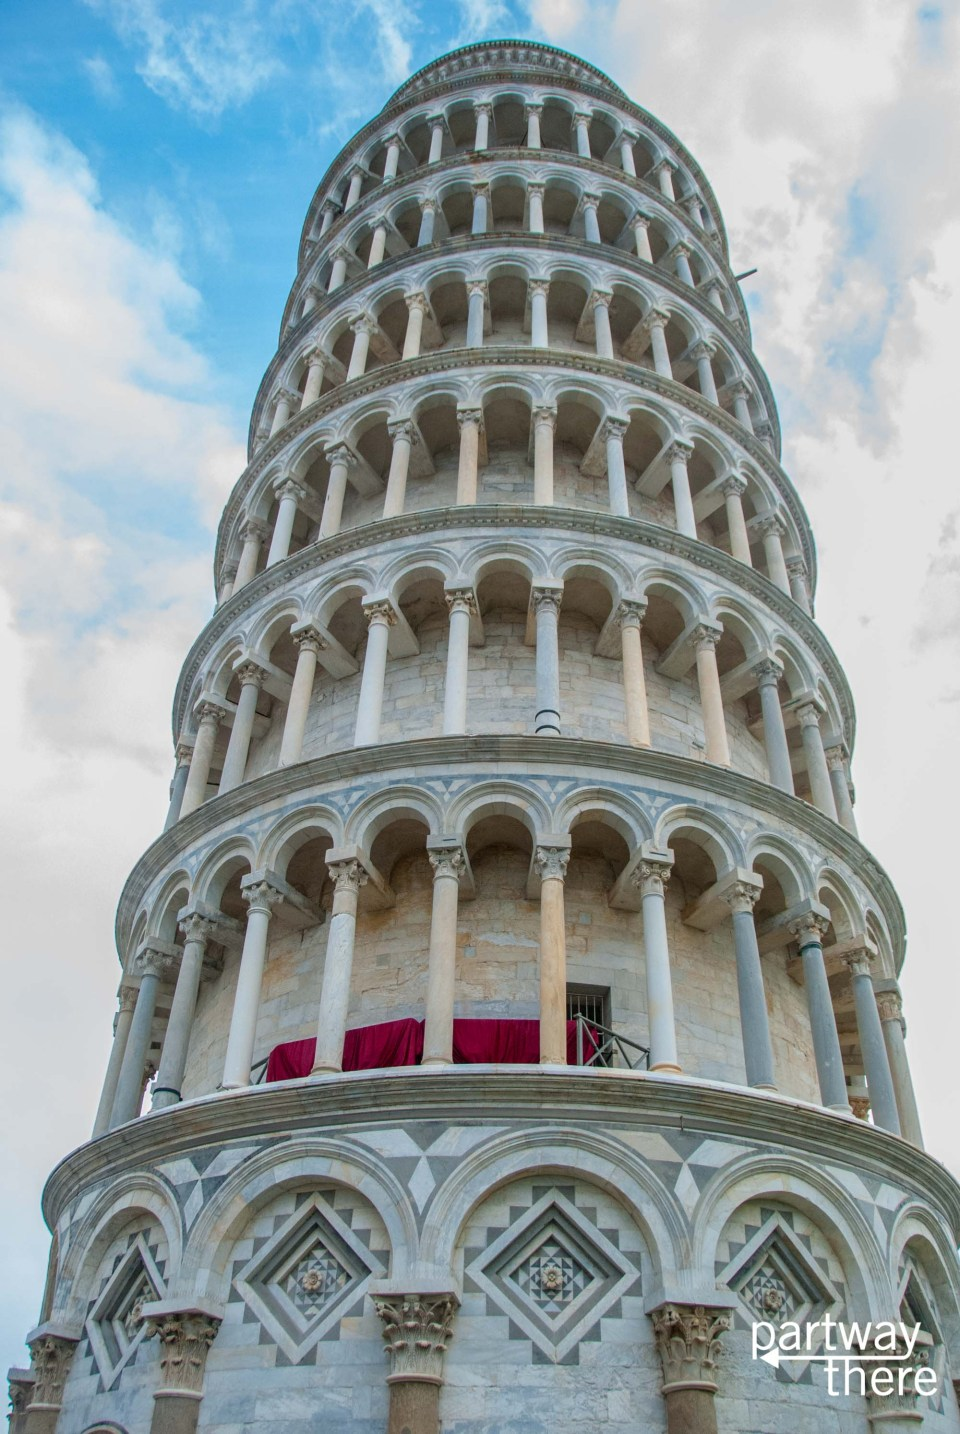 Close-up of the Leaning Tower of Pisa